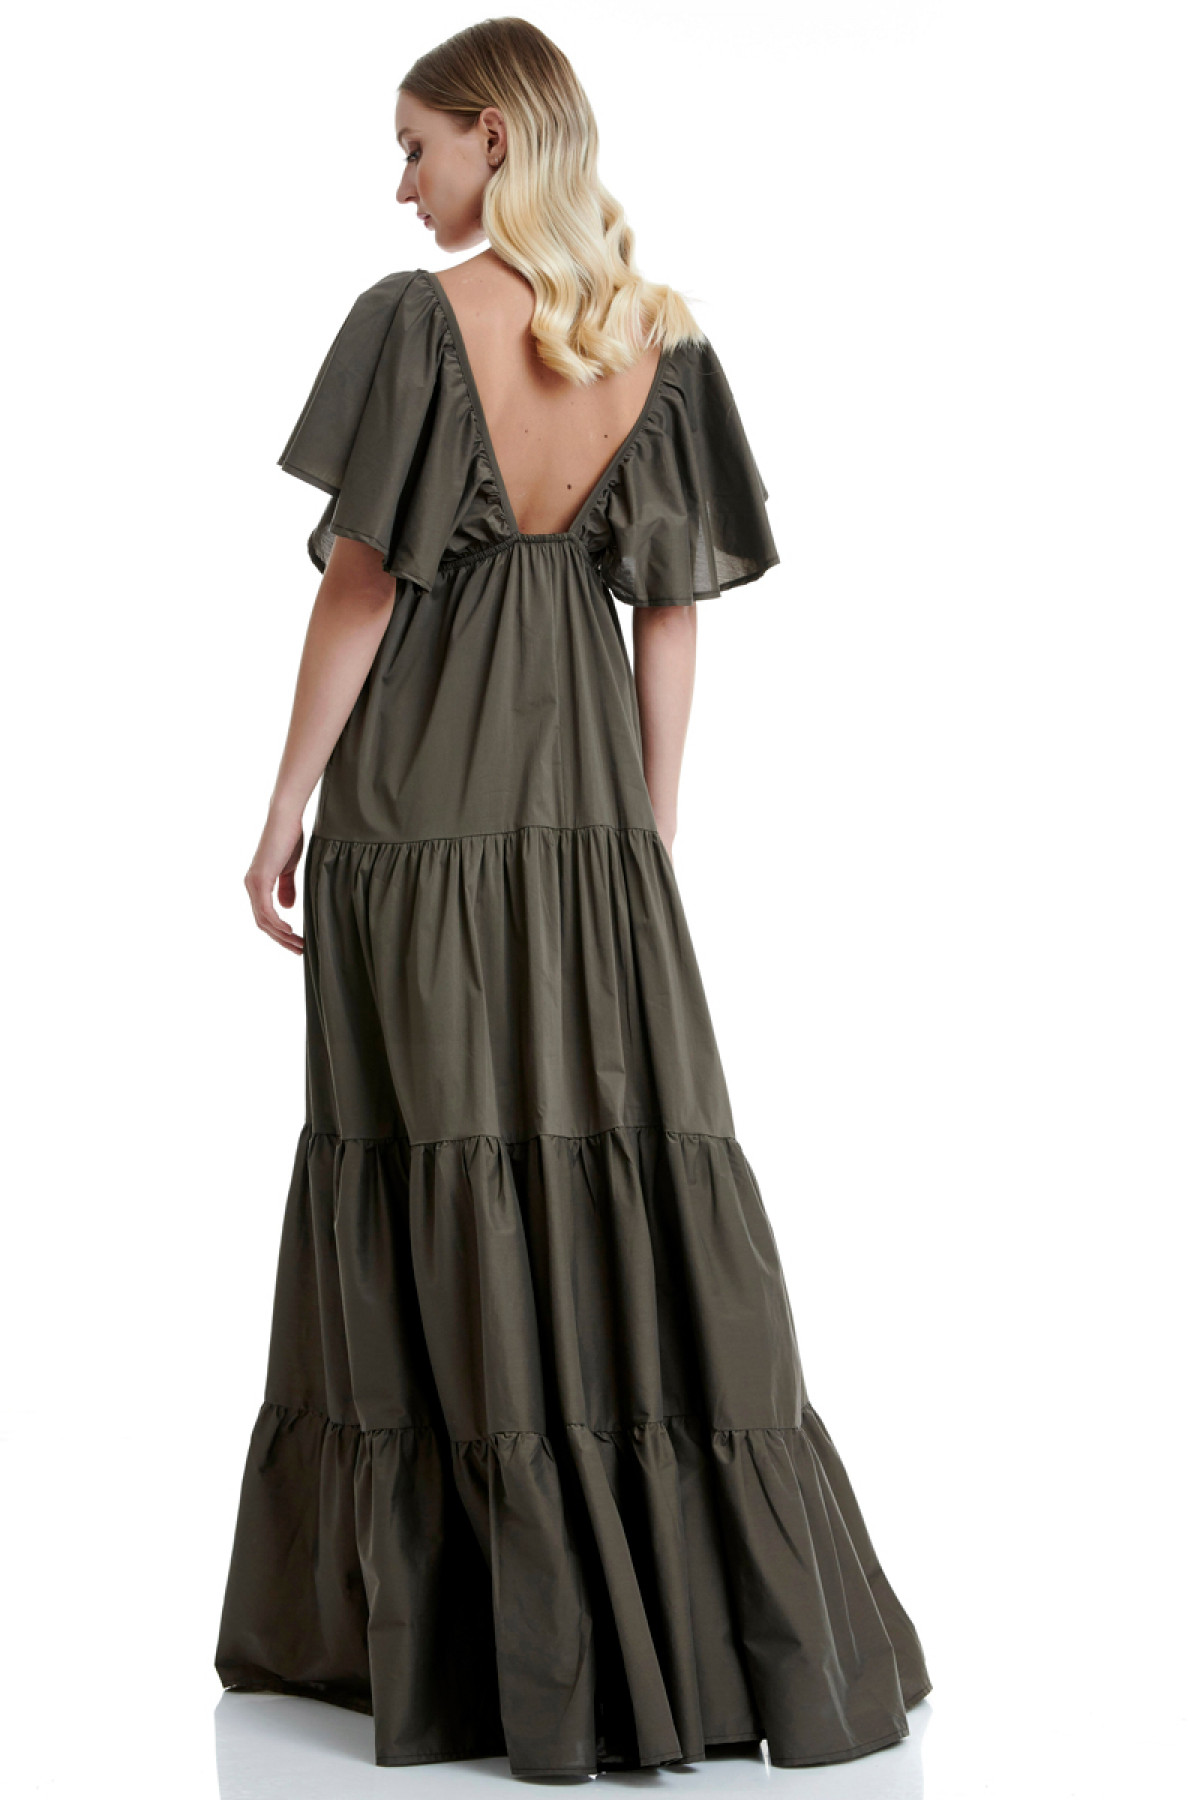 KHAKI LONG POPLIN DRESS